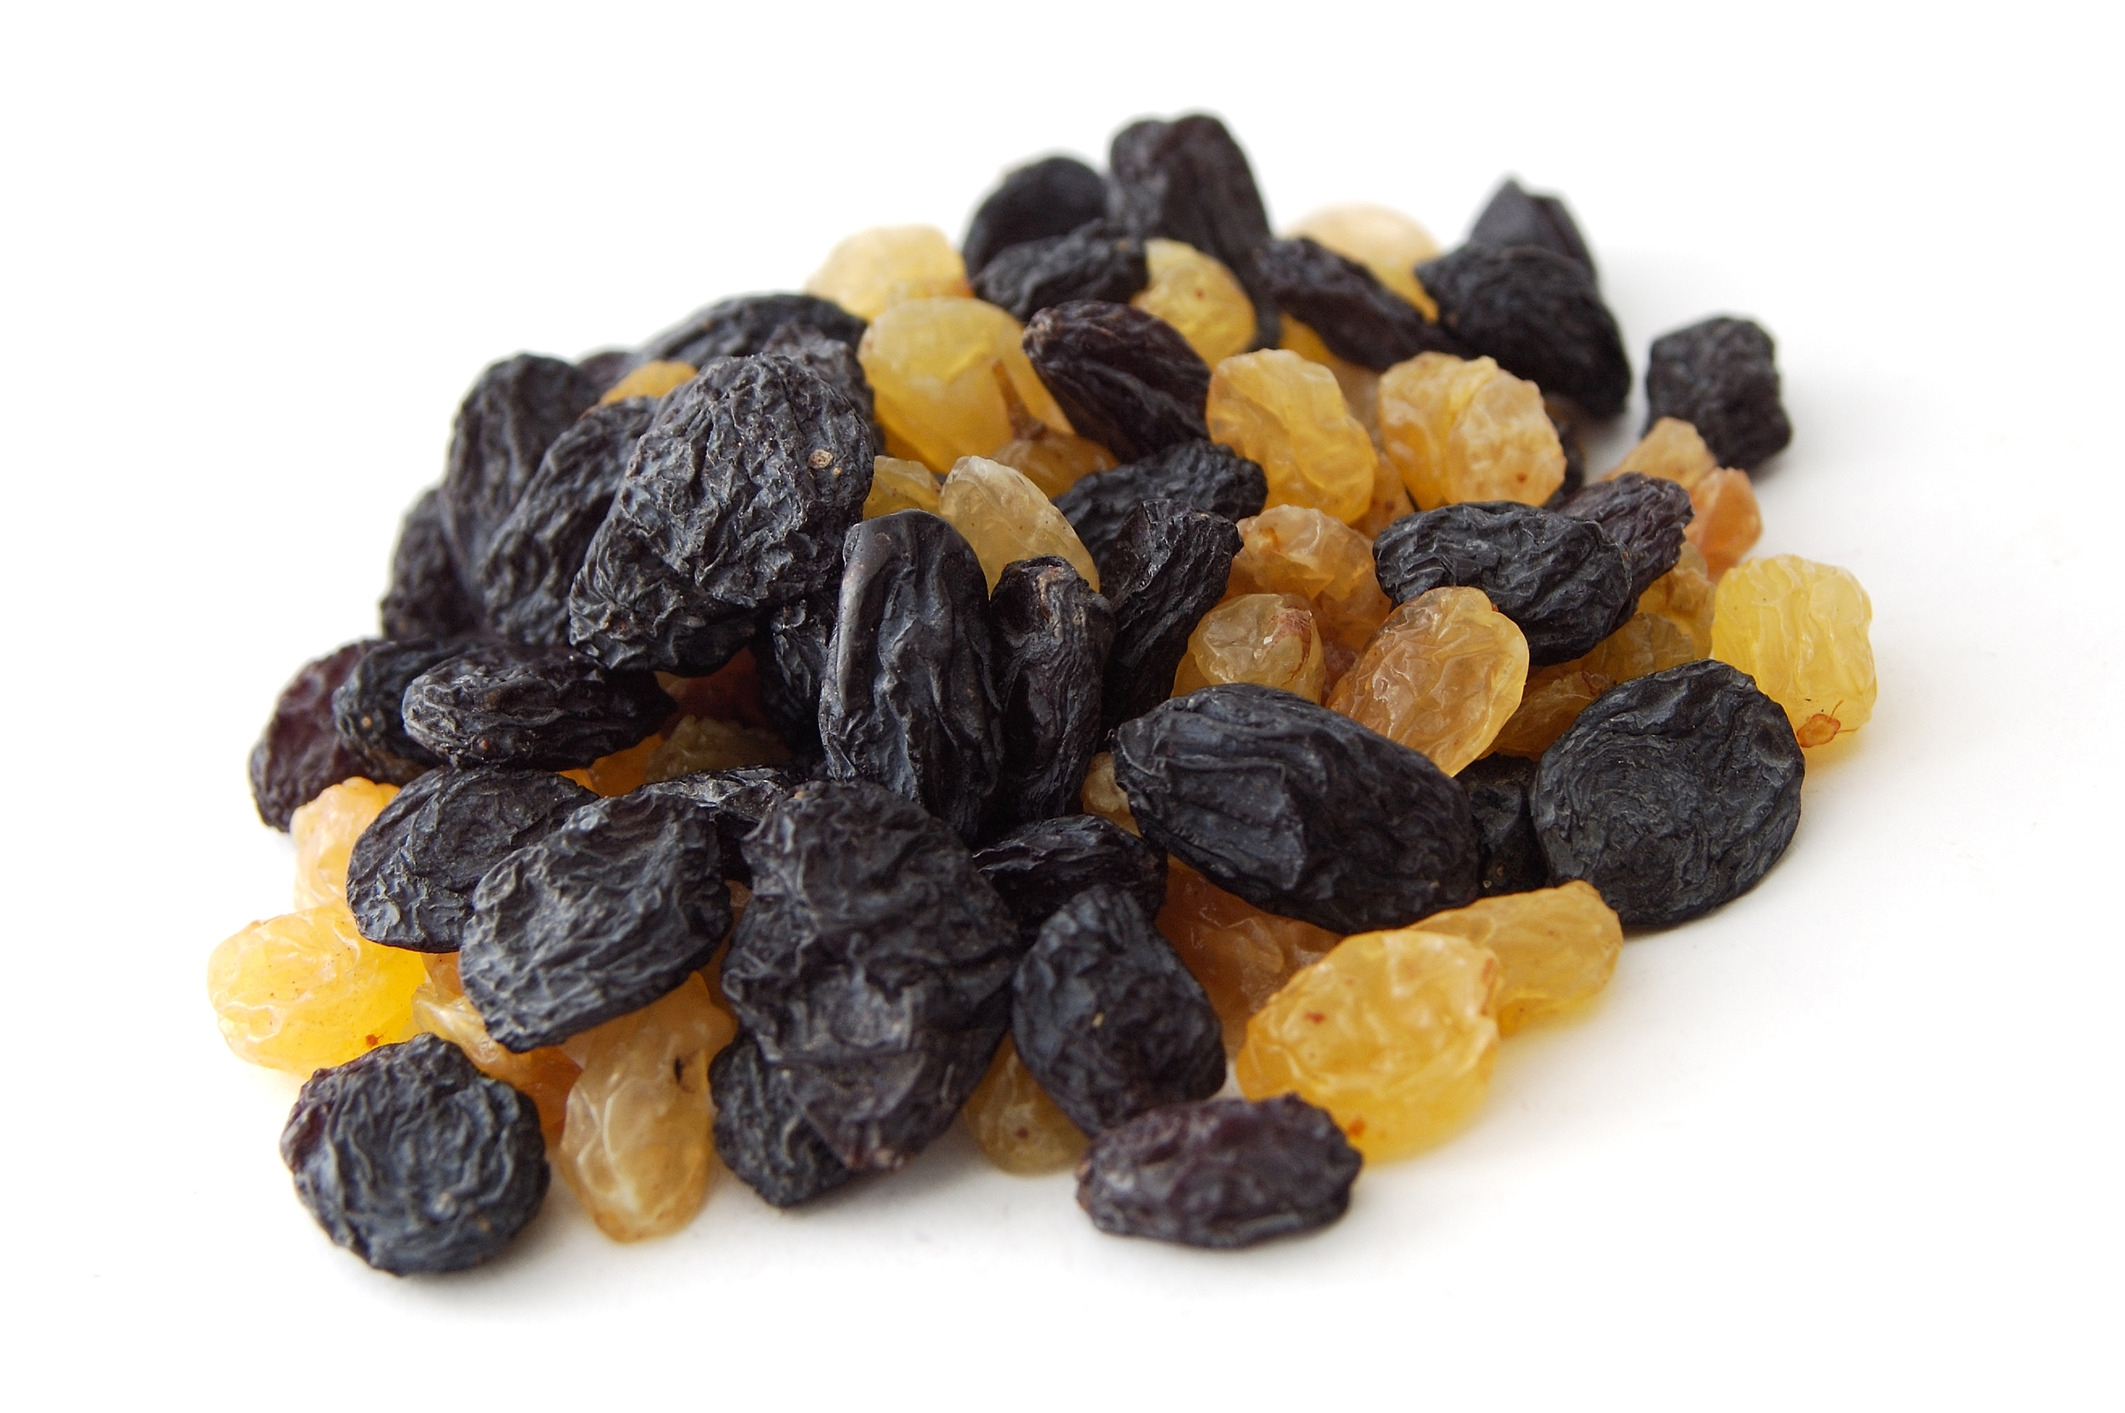 Raisins Hd Wallpaper